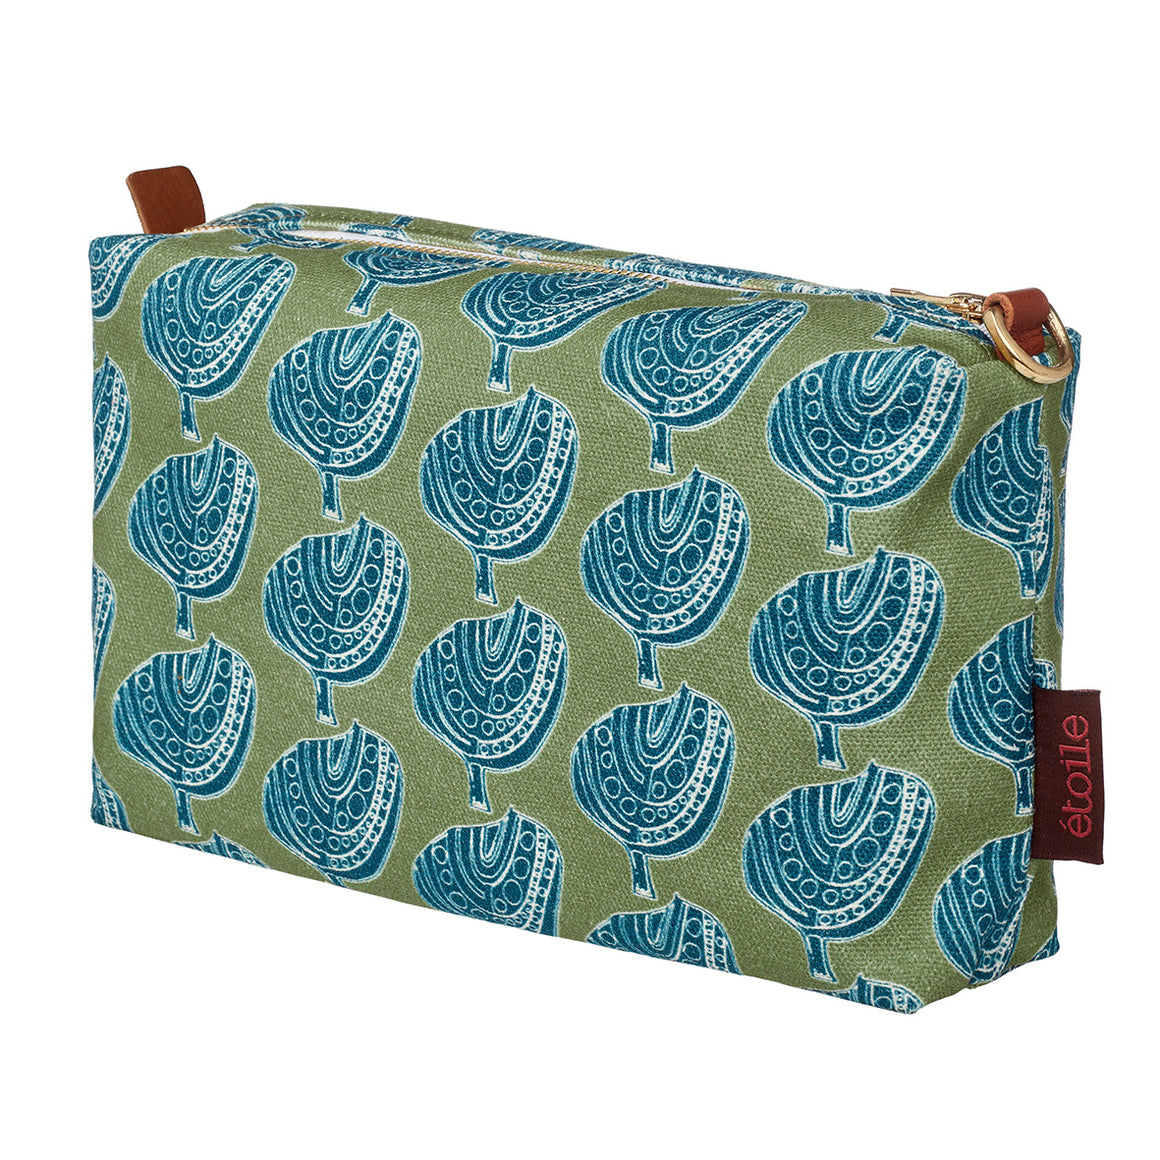 Graphic Apple Tree Pattern Printed Cotton Canvas toiletry, cosmetic and travel Bag in Antique Moss Green and Petrol Blue water resistant